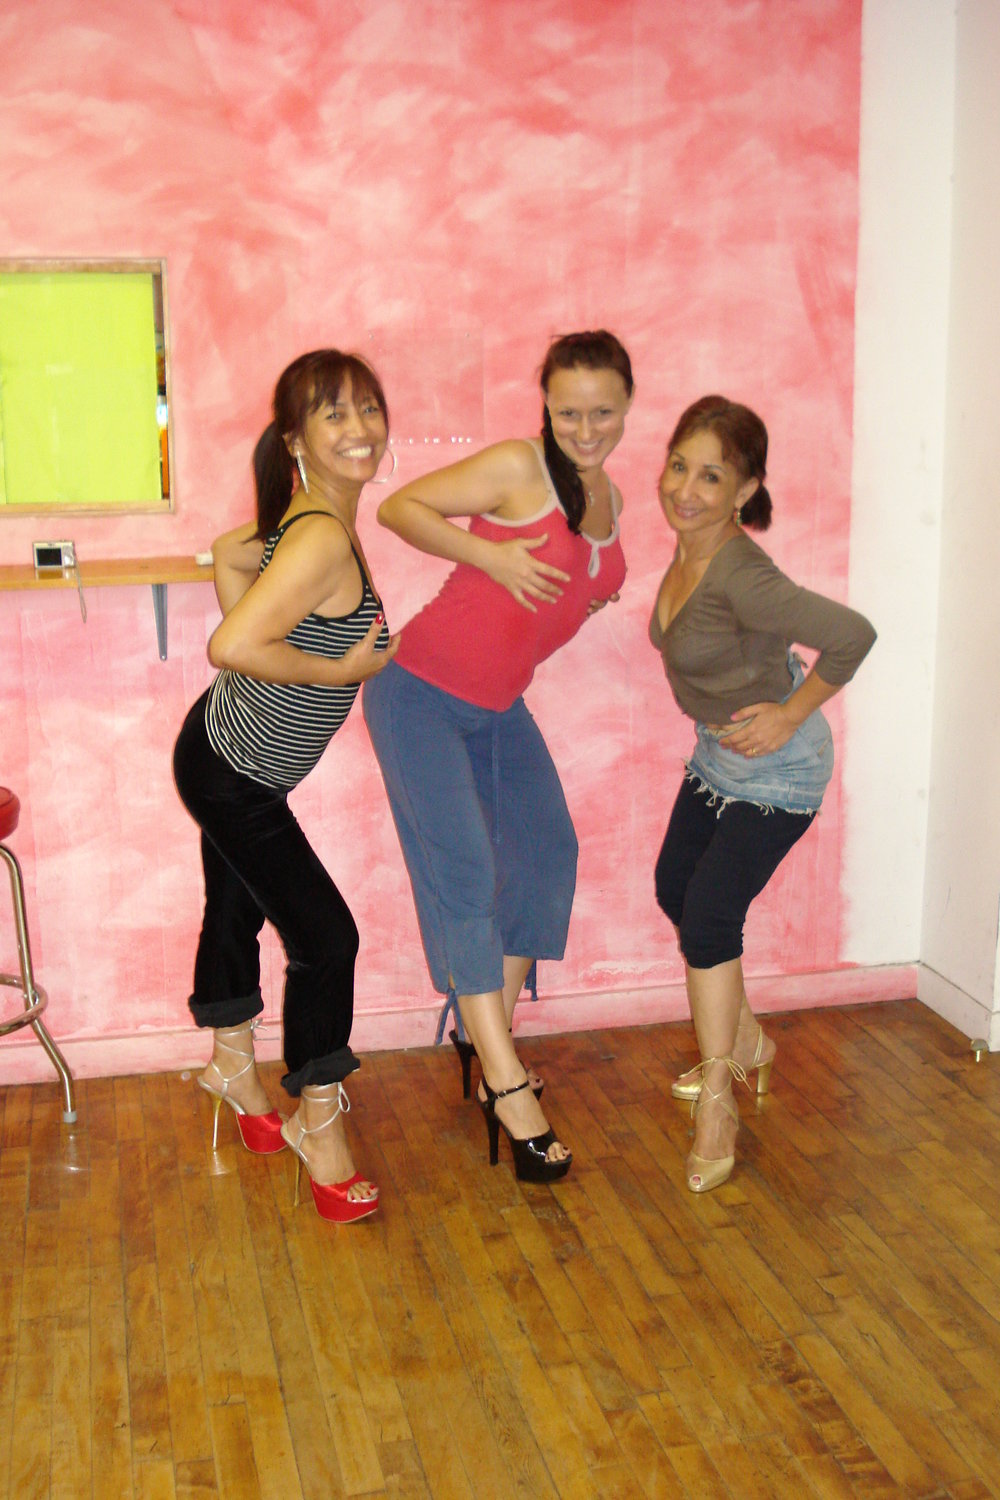 cheryl and jane stip work out 2.JPG